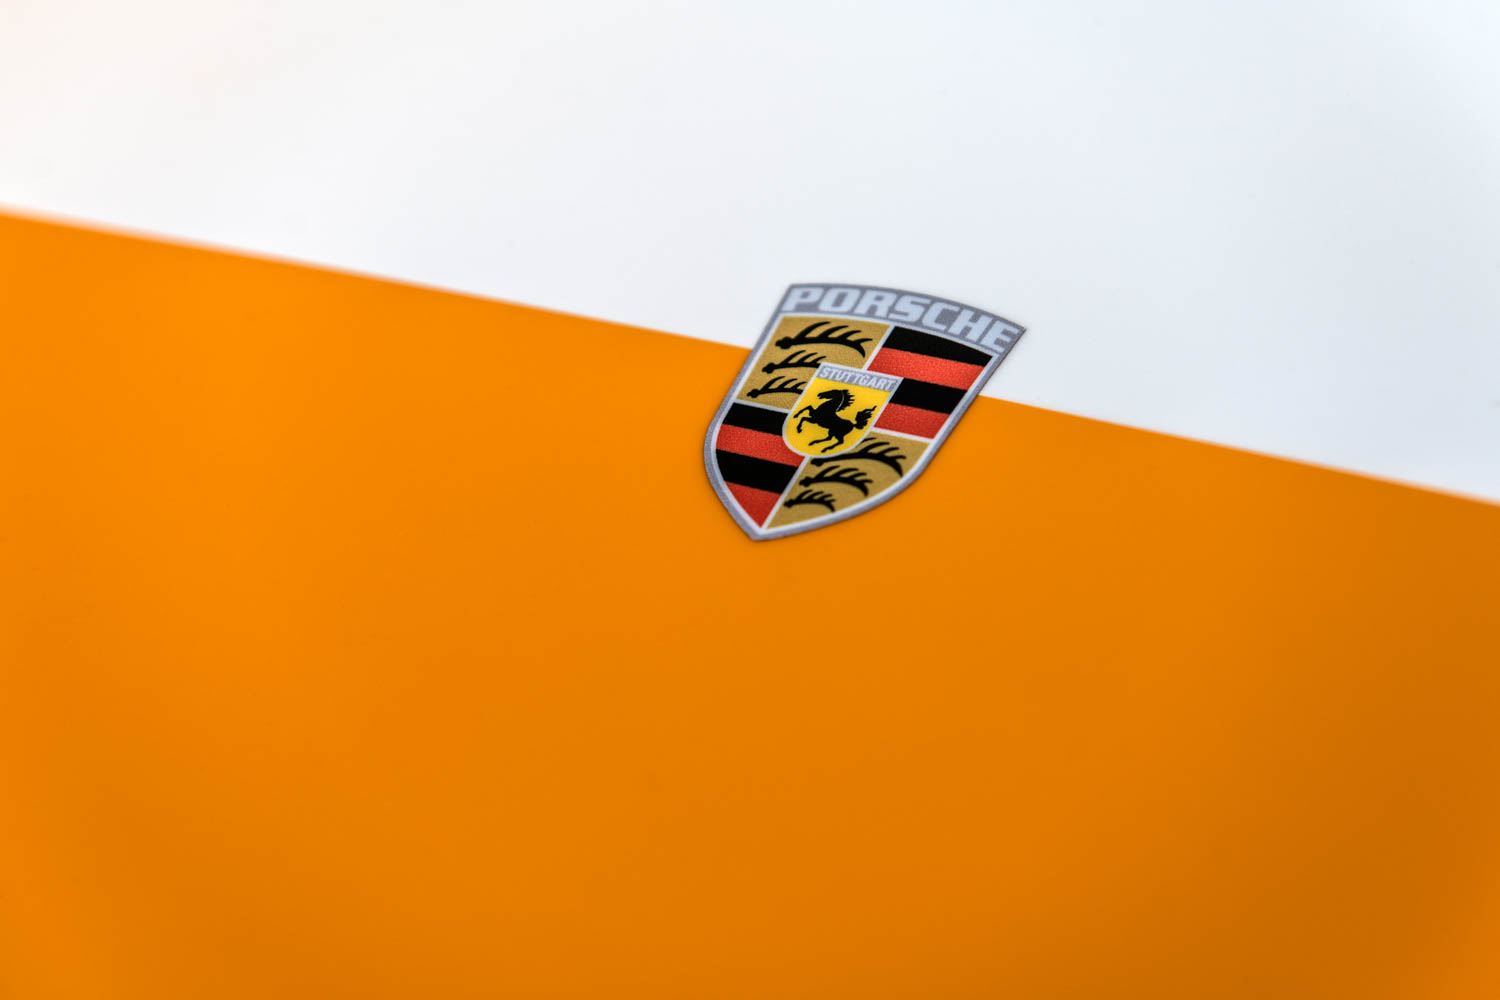 Emory Porsche 911K badge